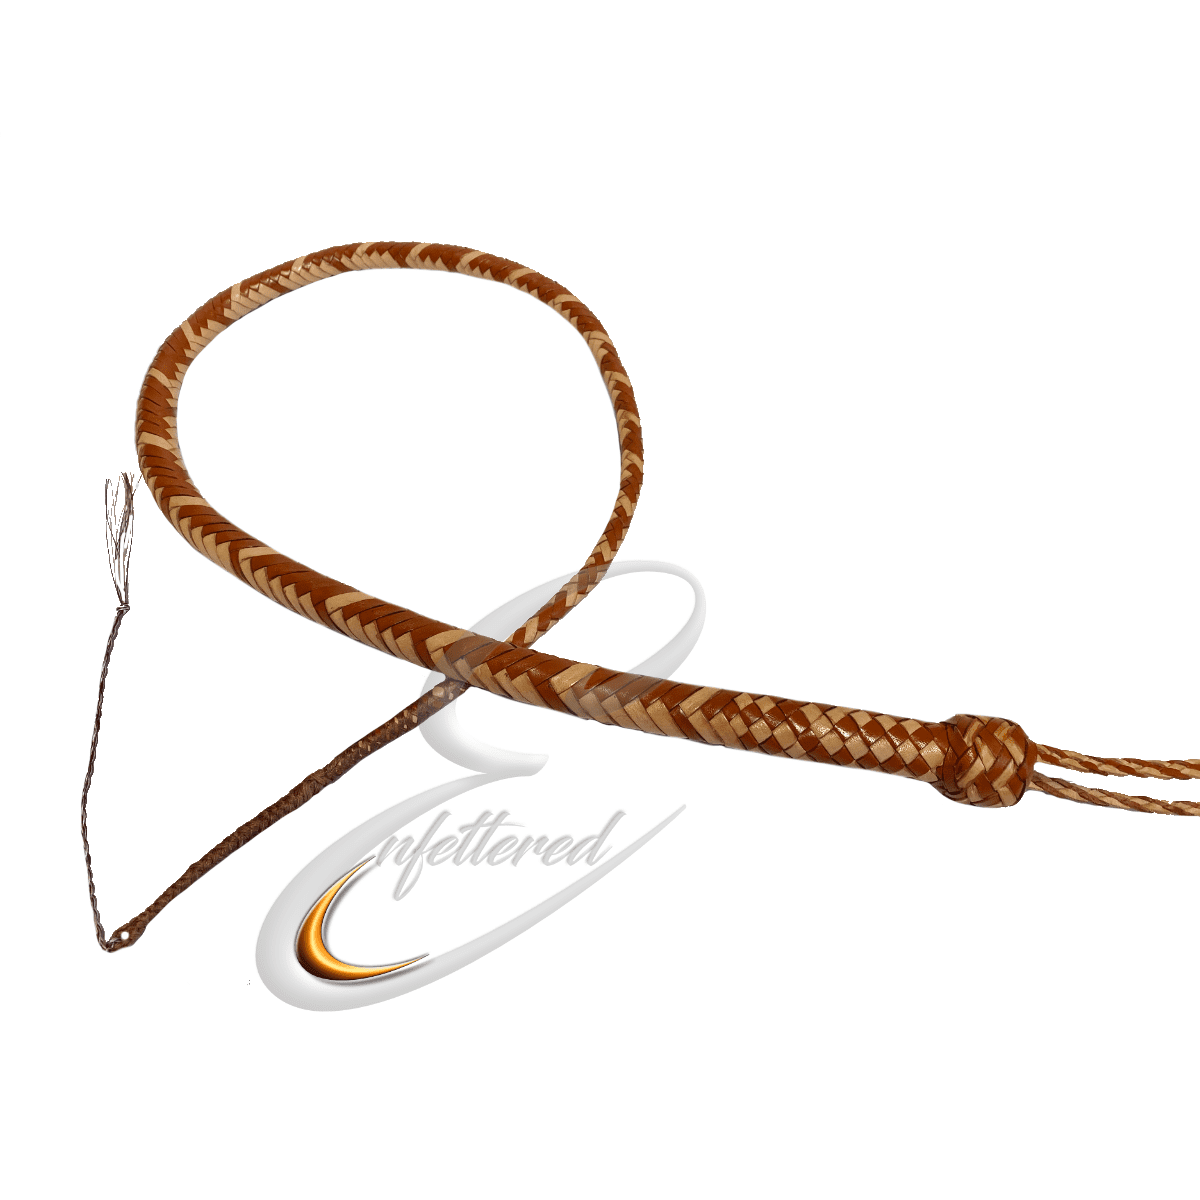 Enfettered Kangaroo Hide Leather Signal Whip 3ft 12 Plait